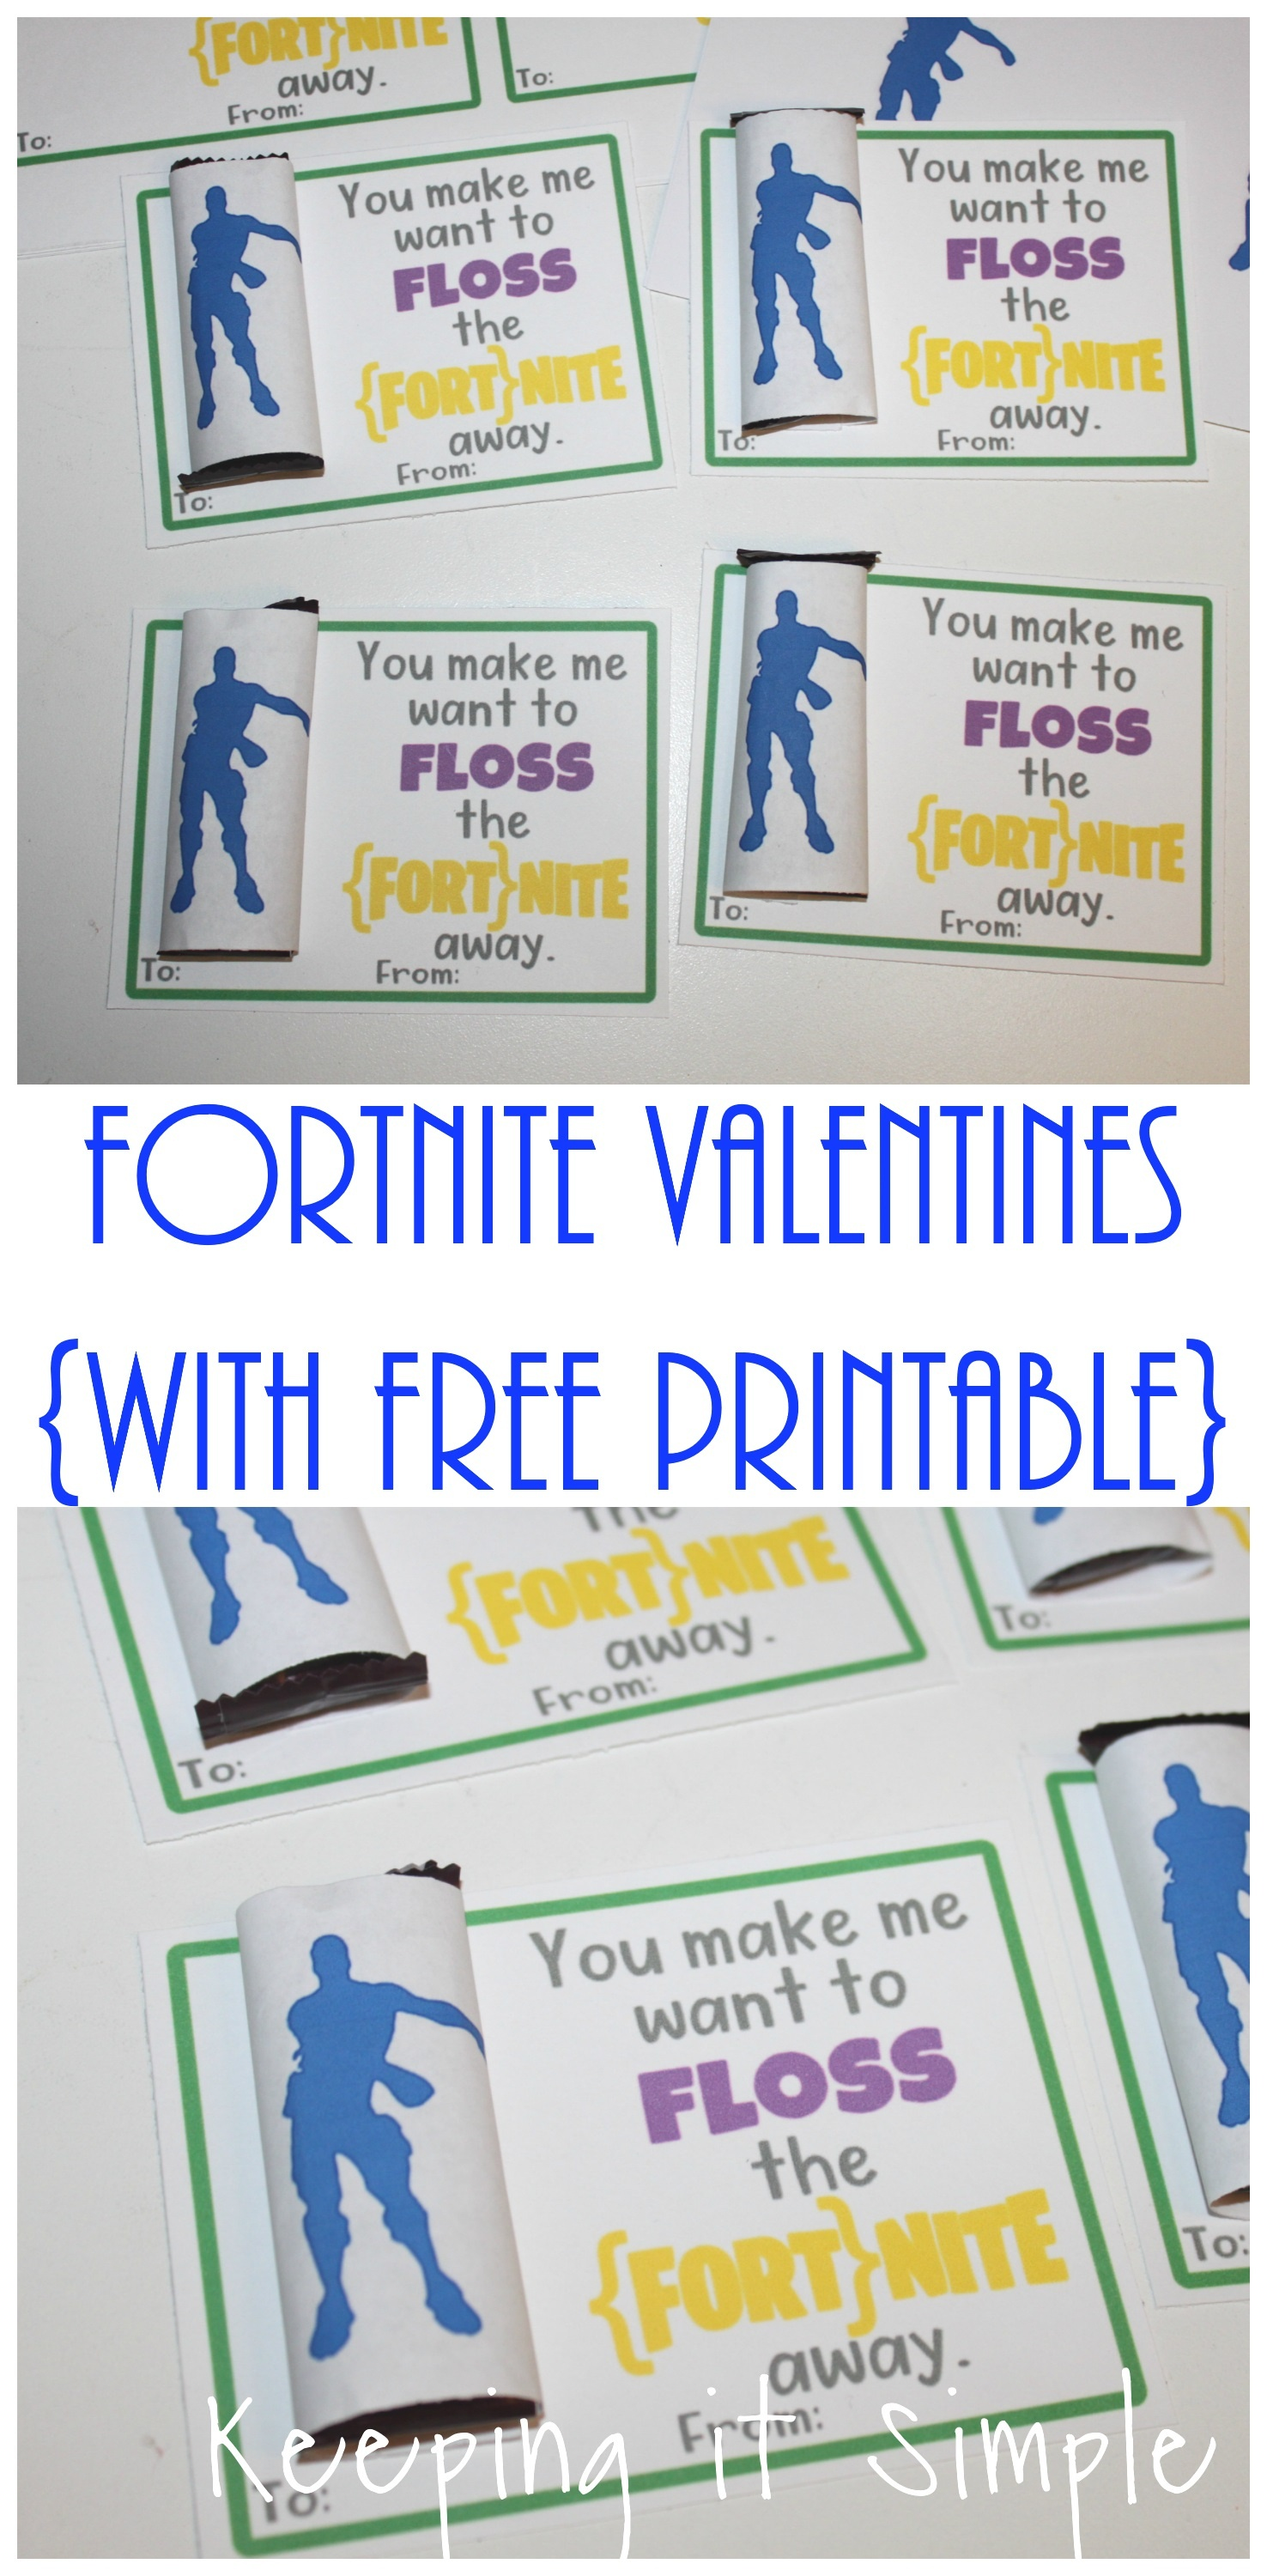 Homemade Fortnite Valentines With Free Printable • Keeping It Simple - Fortnite Free Printables